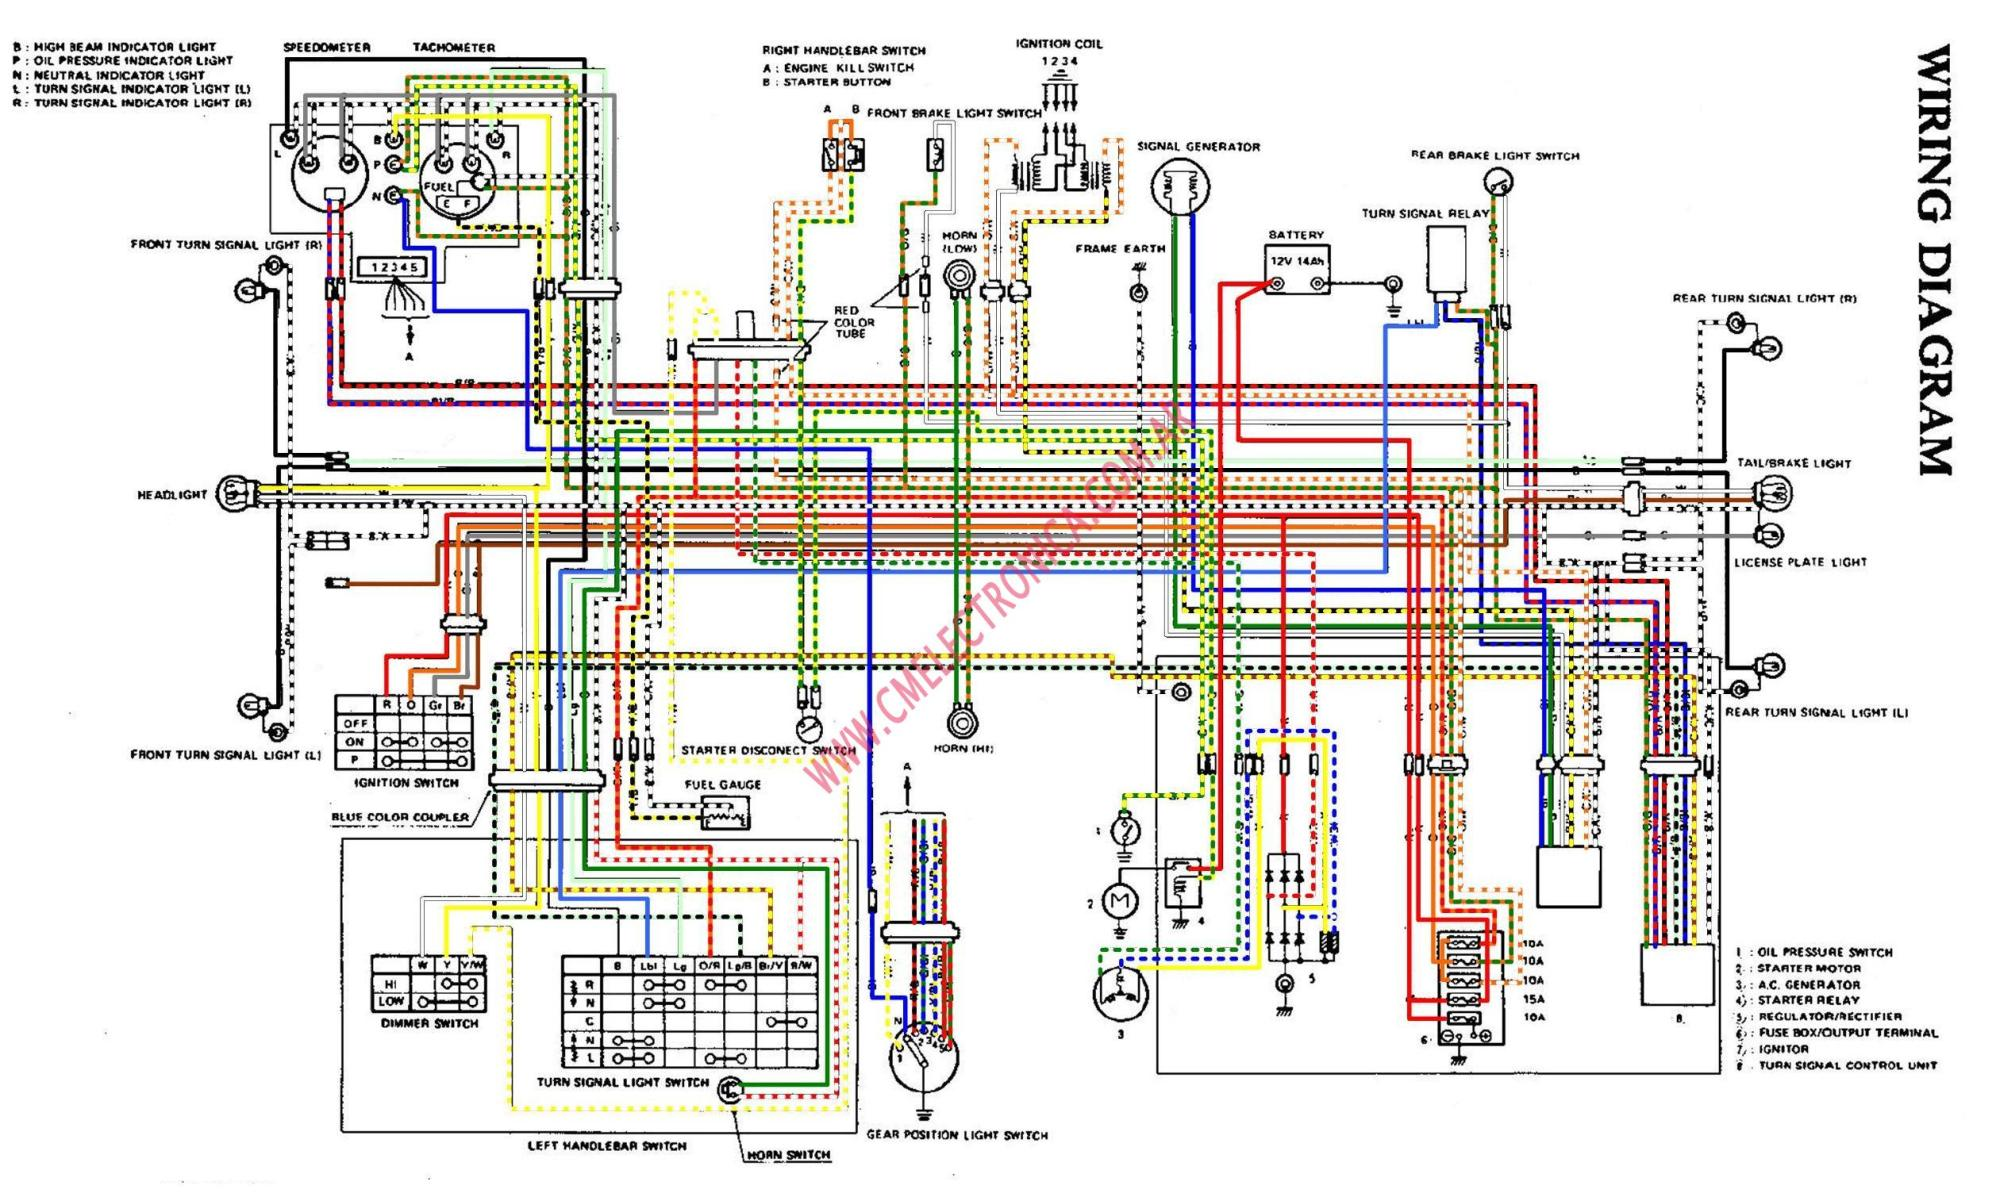 hight resolution of suzuki wiring diagram wiring diagrams u2022 suzuki atv diagrams suzuki king quad 700 wiring diagram